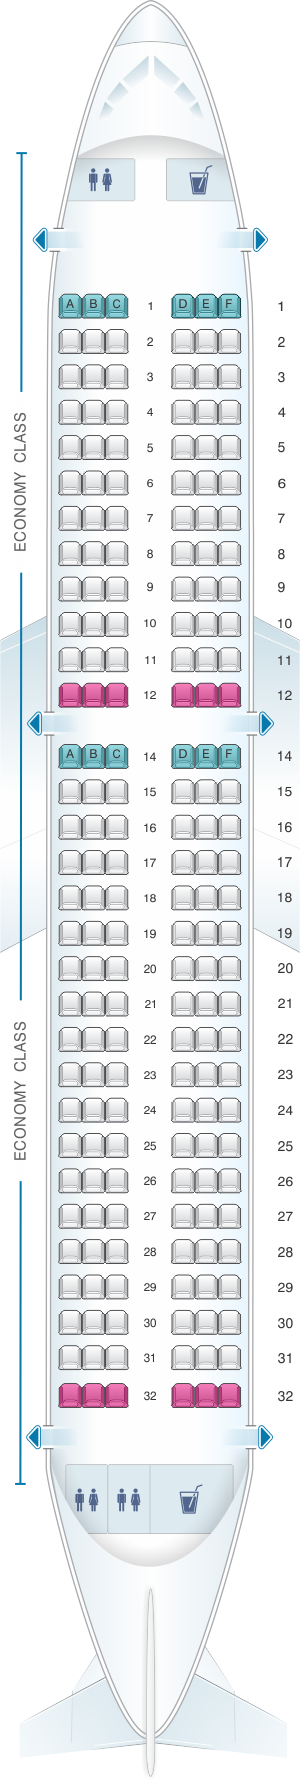 Seat map for Iberia Airbus A320 Neo